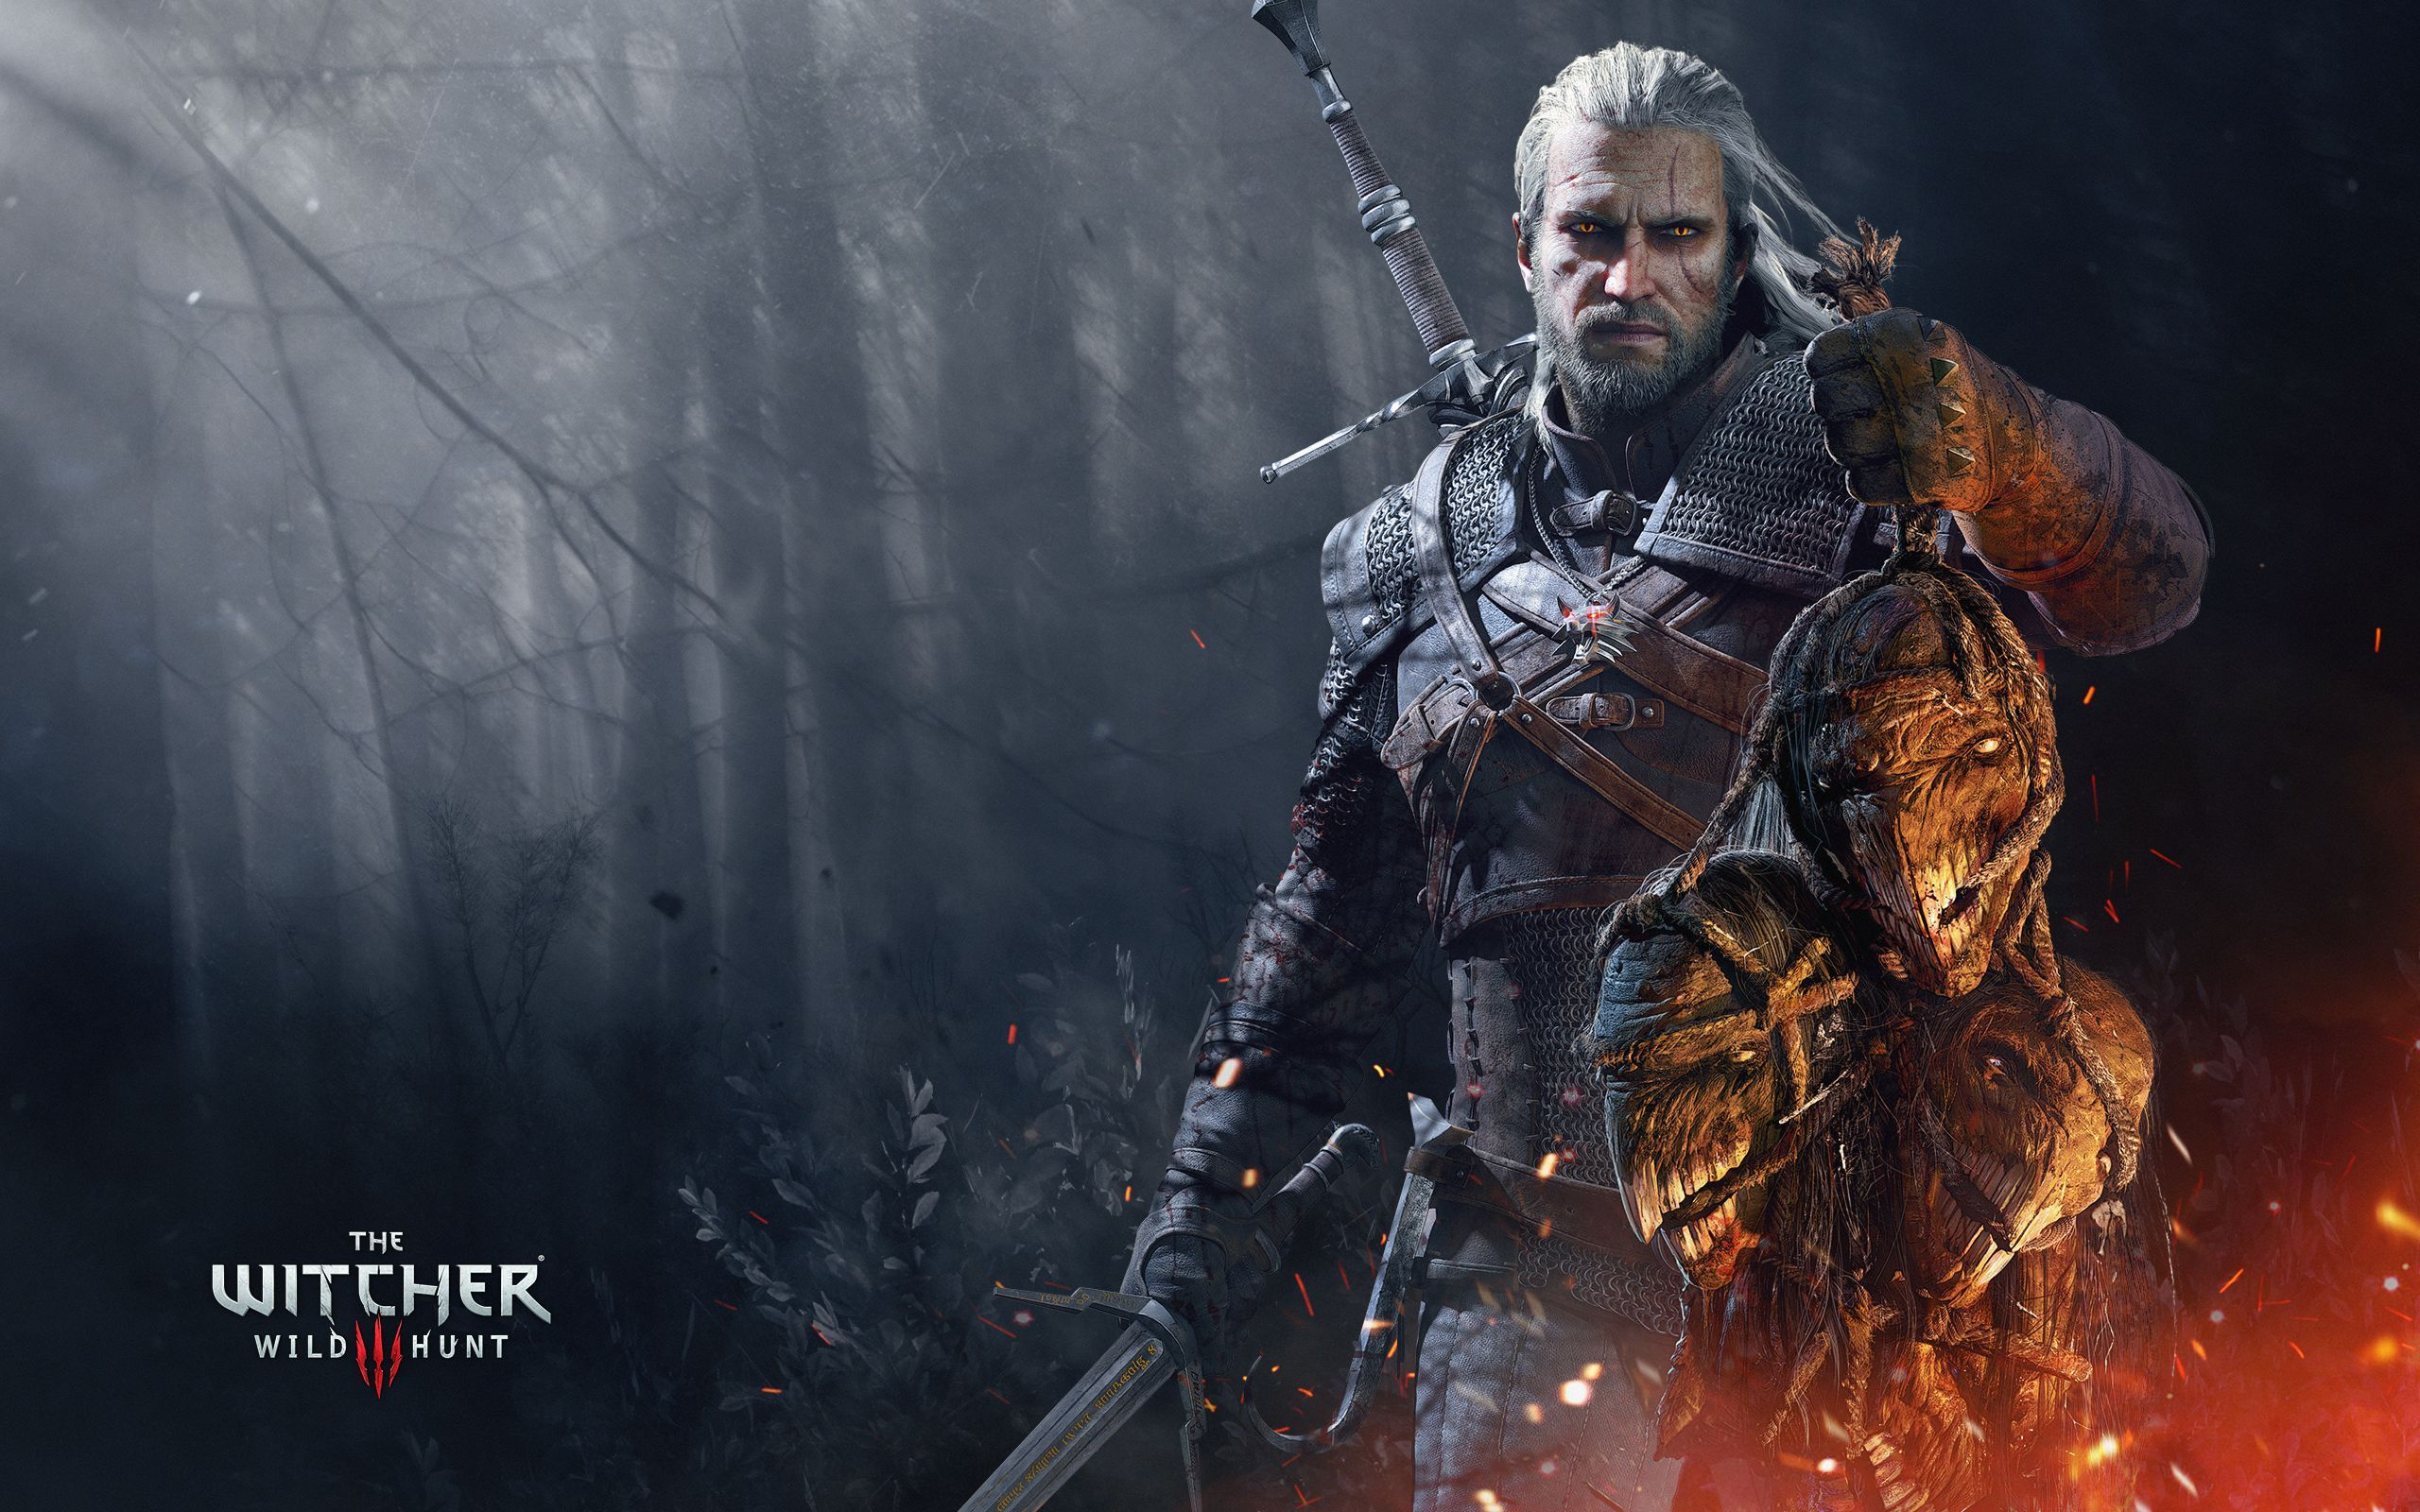 The Witcher 3 Wild Hunt Hd Wallpaper 2560x1600 With Images